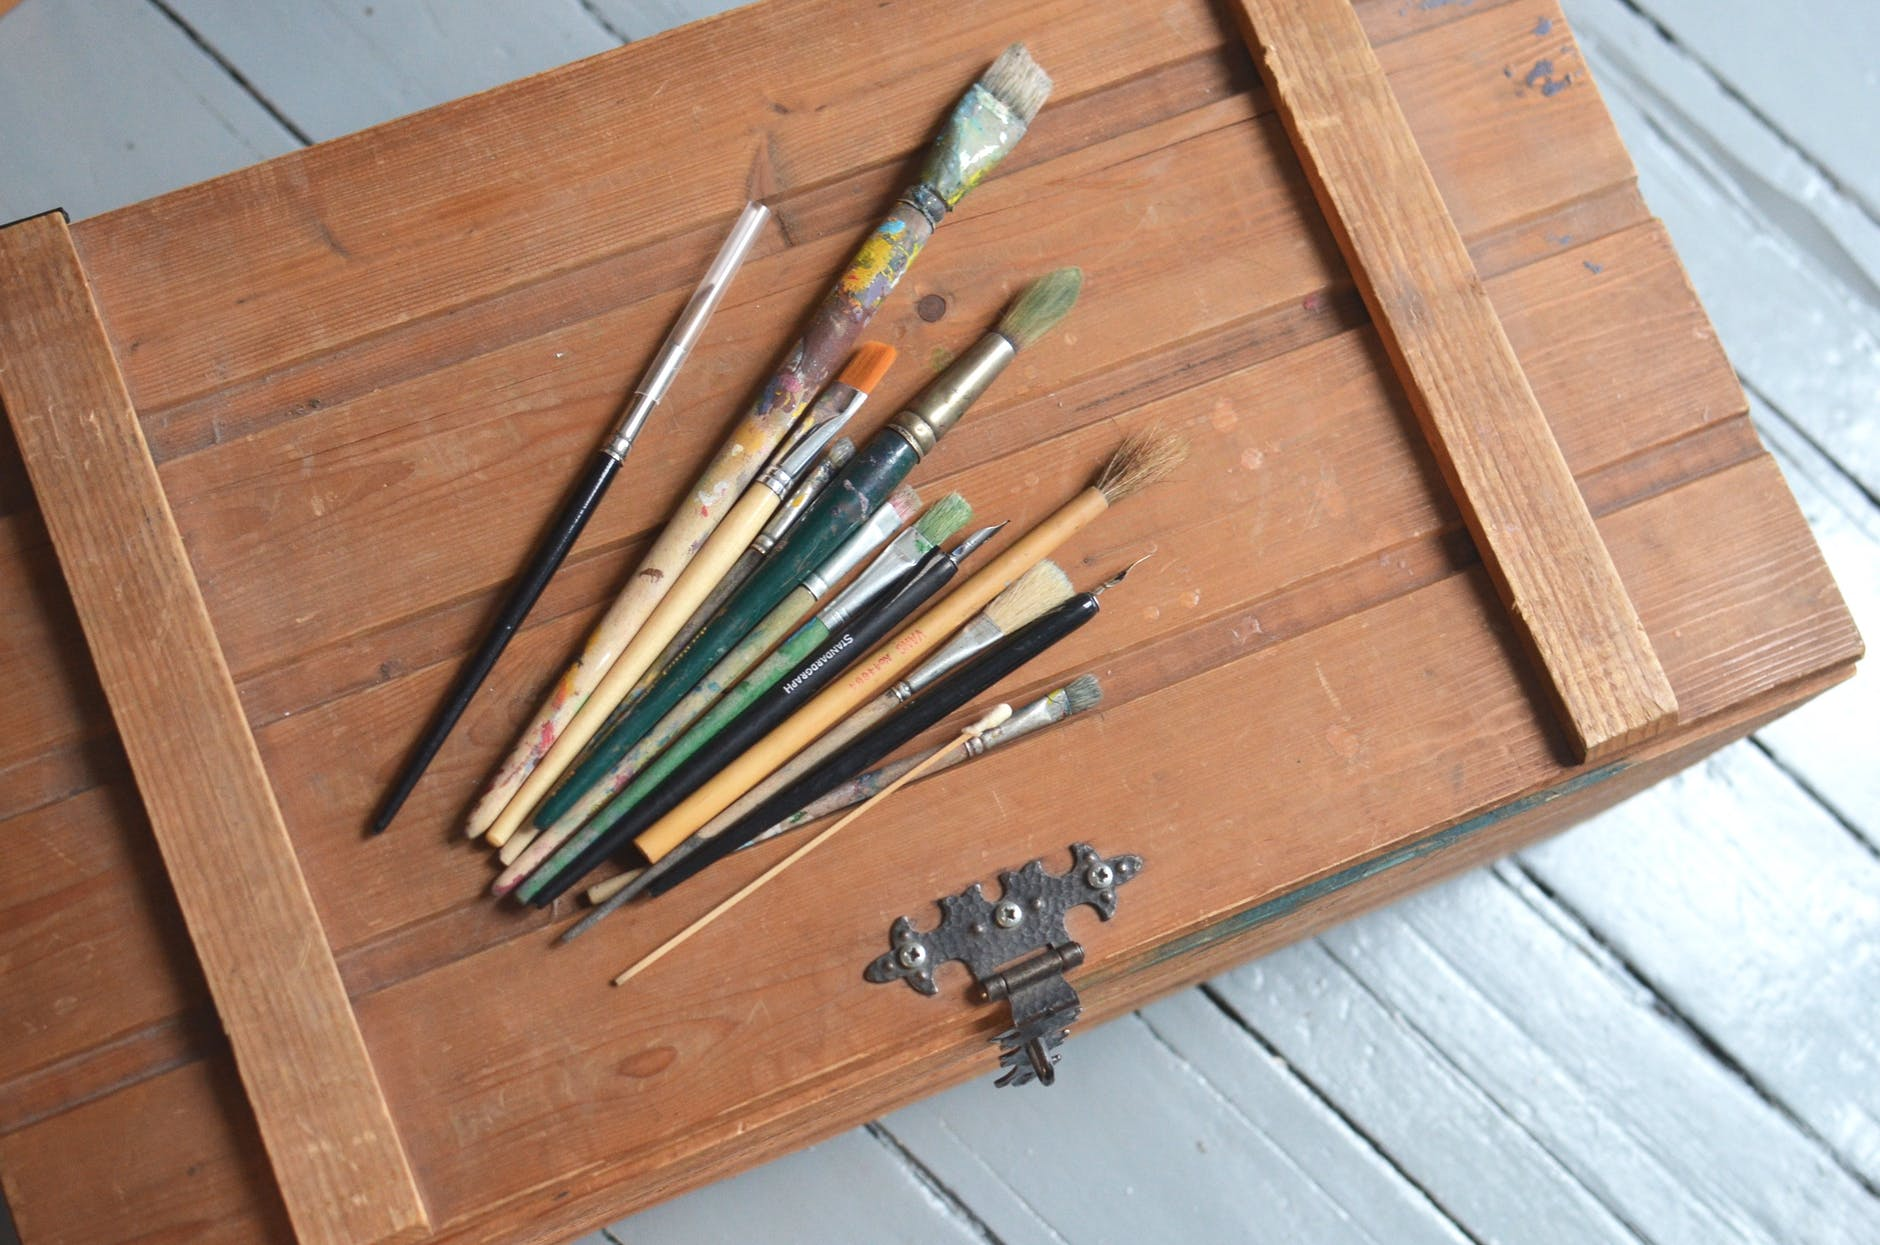 messy paintbrushes placed on wooden box